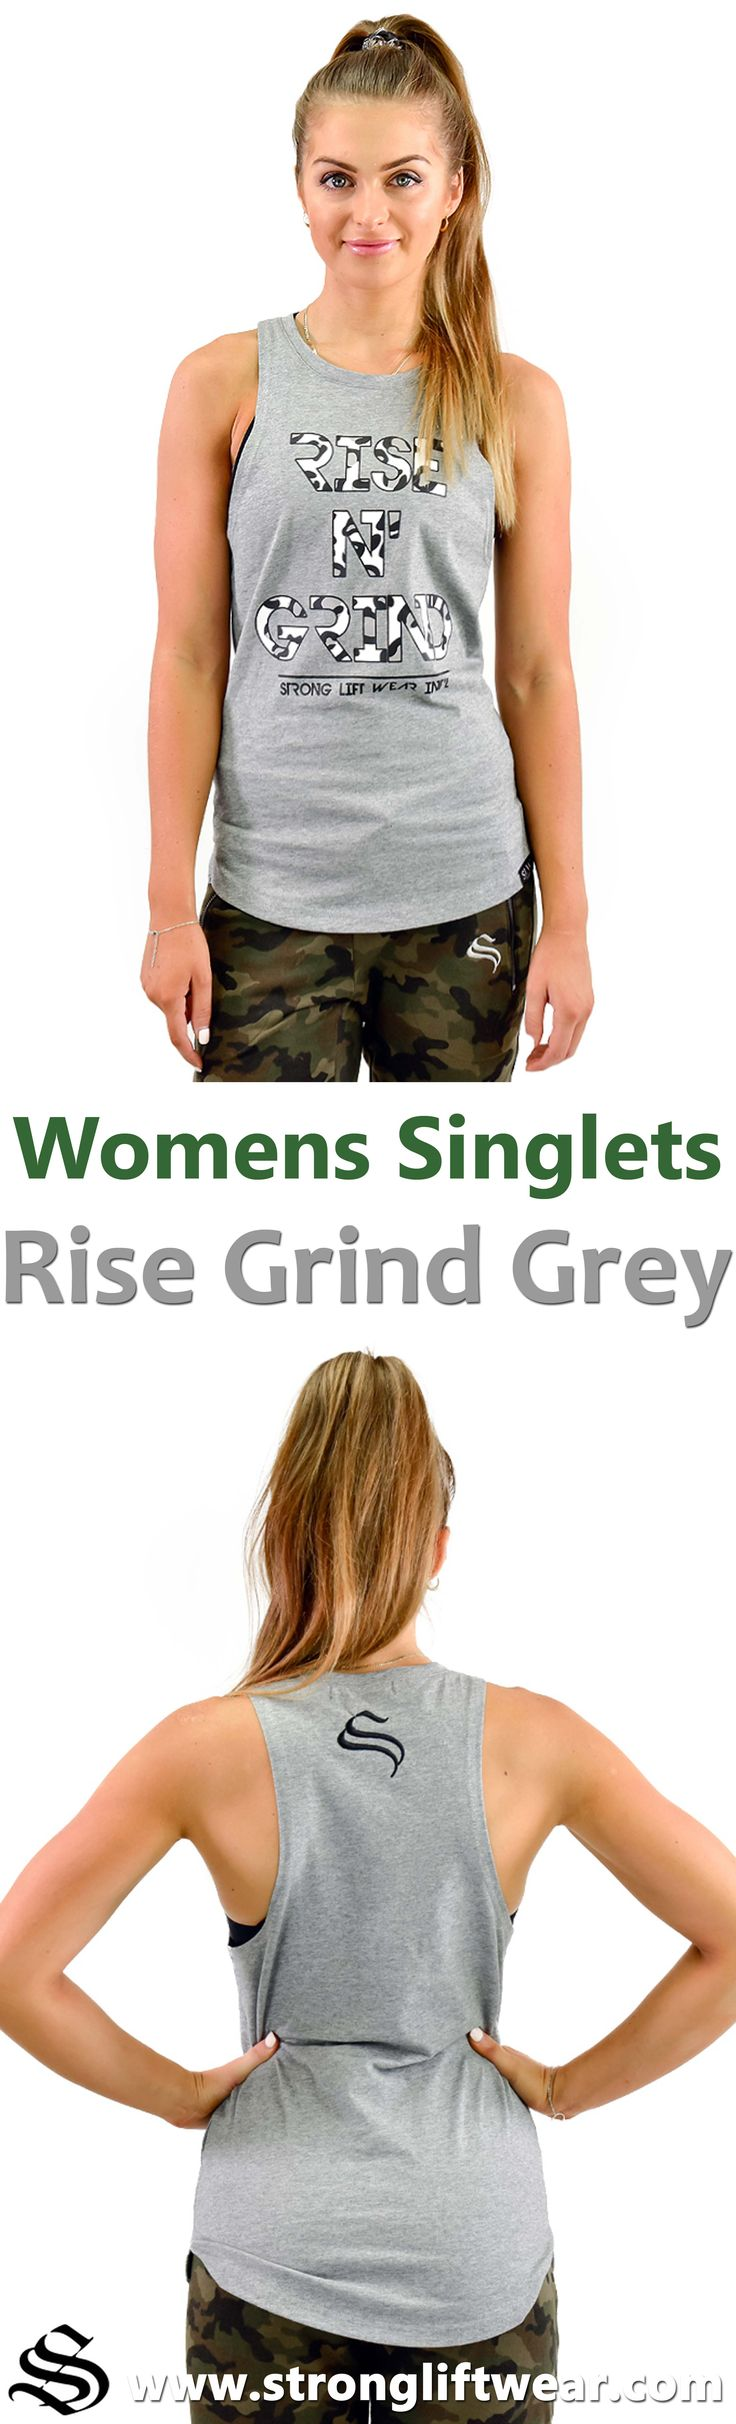 Ladies boulder sleeveless - Rise n' Grind - Grey  The ever popular boulder series, tapered for the ladies :D │gym wear │fitness wear │fitness clothing │fitness │outfits │workout dress │gym outfits │workout outfits │shorts │hoodie │singlets │pants #gymwear #fitnesswear #fitnessclothing #fitness #outfits #workoutdress #gymoutfits #workoutoutfits #shorts #hoodie #singlets #pants